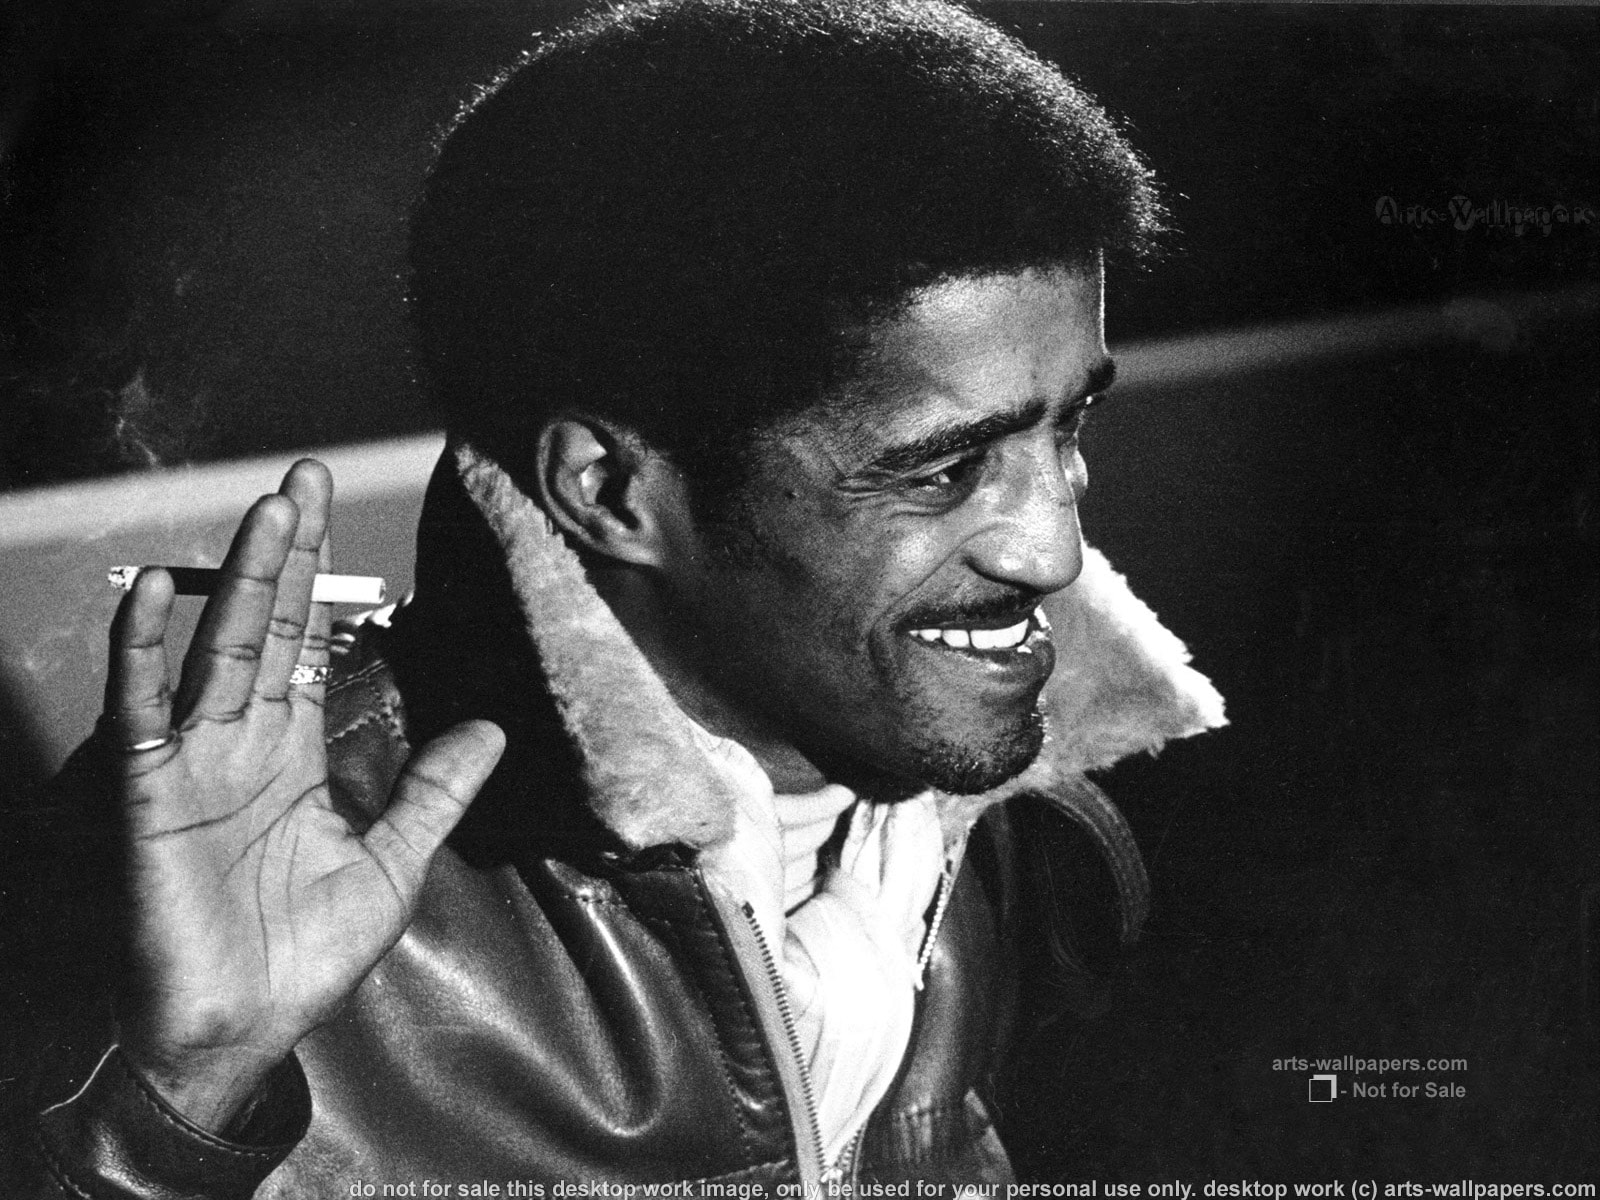 a biography of sammy davis jr a musician Sammy davis, jr bio/wiki 2018 recognized throughout a lot of his job as the world's biggest living entertainer, sammy davis, jr was an amazingly well-known and versatile performer similarly adept at performing, singing, dance, and impersonations - in a nutshell, a variety musician in the basic tradition.